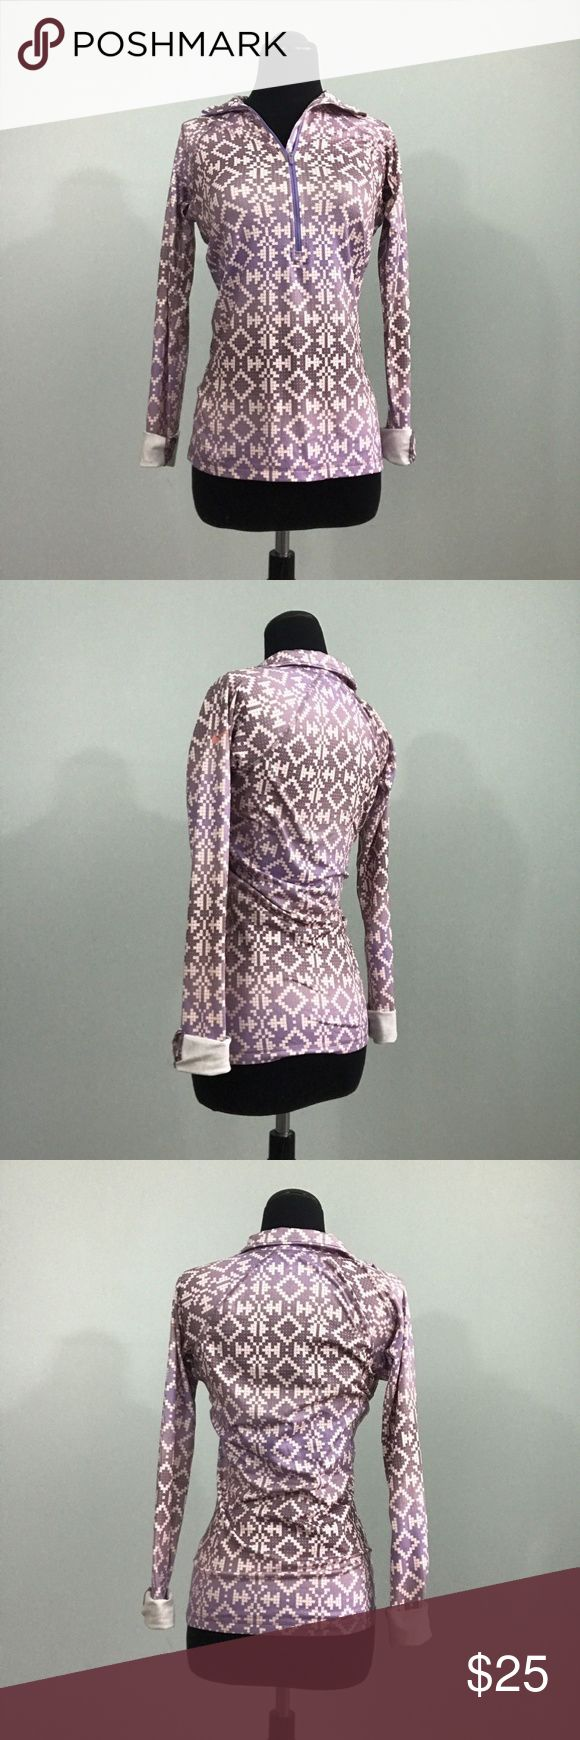 """Nike Pro Purple Aztec Long Sleeve Pullover HalfZip Nike Pro Womens XS Purple Aztec Long Sleeve Pullover Half Zip Top w/ Thumbhole  *Excellent Used Condition!  Measurements: XS: 30"""" Bust 24"""" Length Nike Tops Tees - Long Sleeve"""